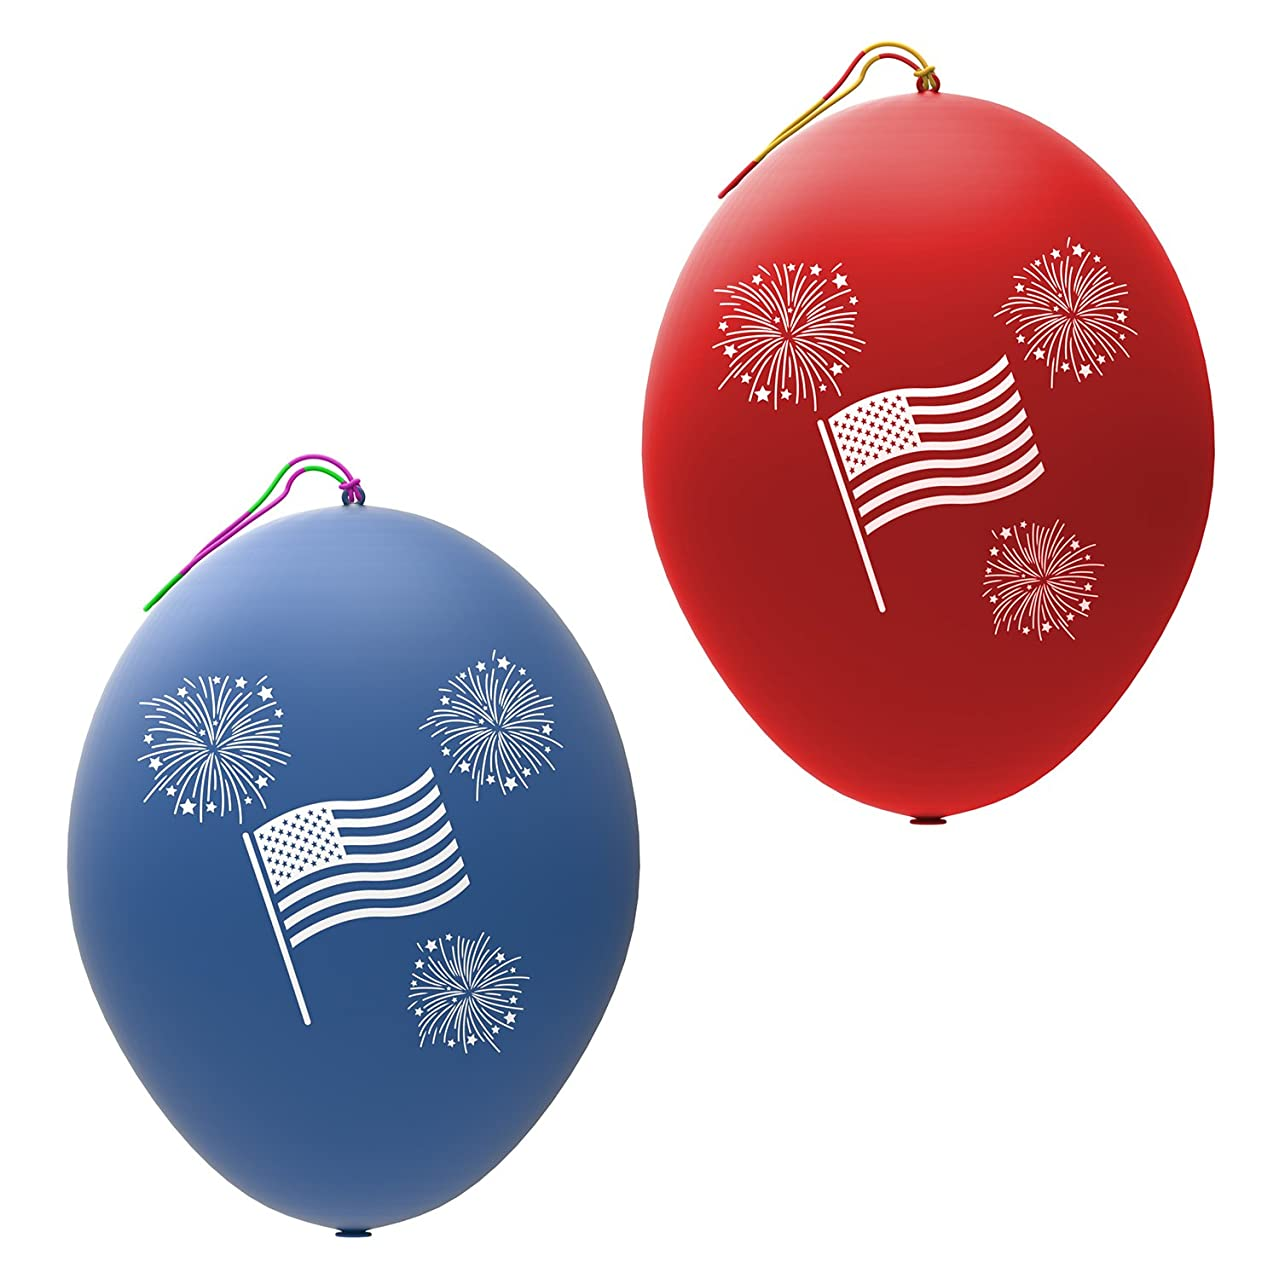 John & Judy 24 Patriotic Punch Balloons for Kids | Best for Memorial Day Party Supplies, Party Favors and Fourth of July Party Decorations | American Flag July 4th Punch Balls for Boys and Girls